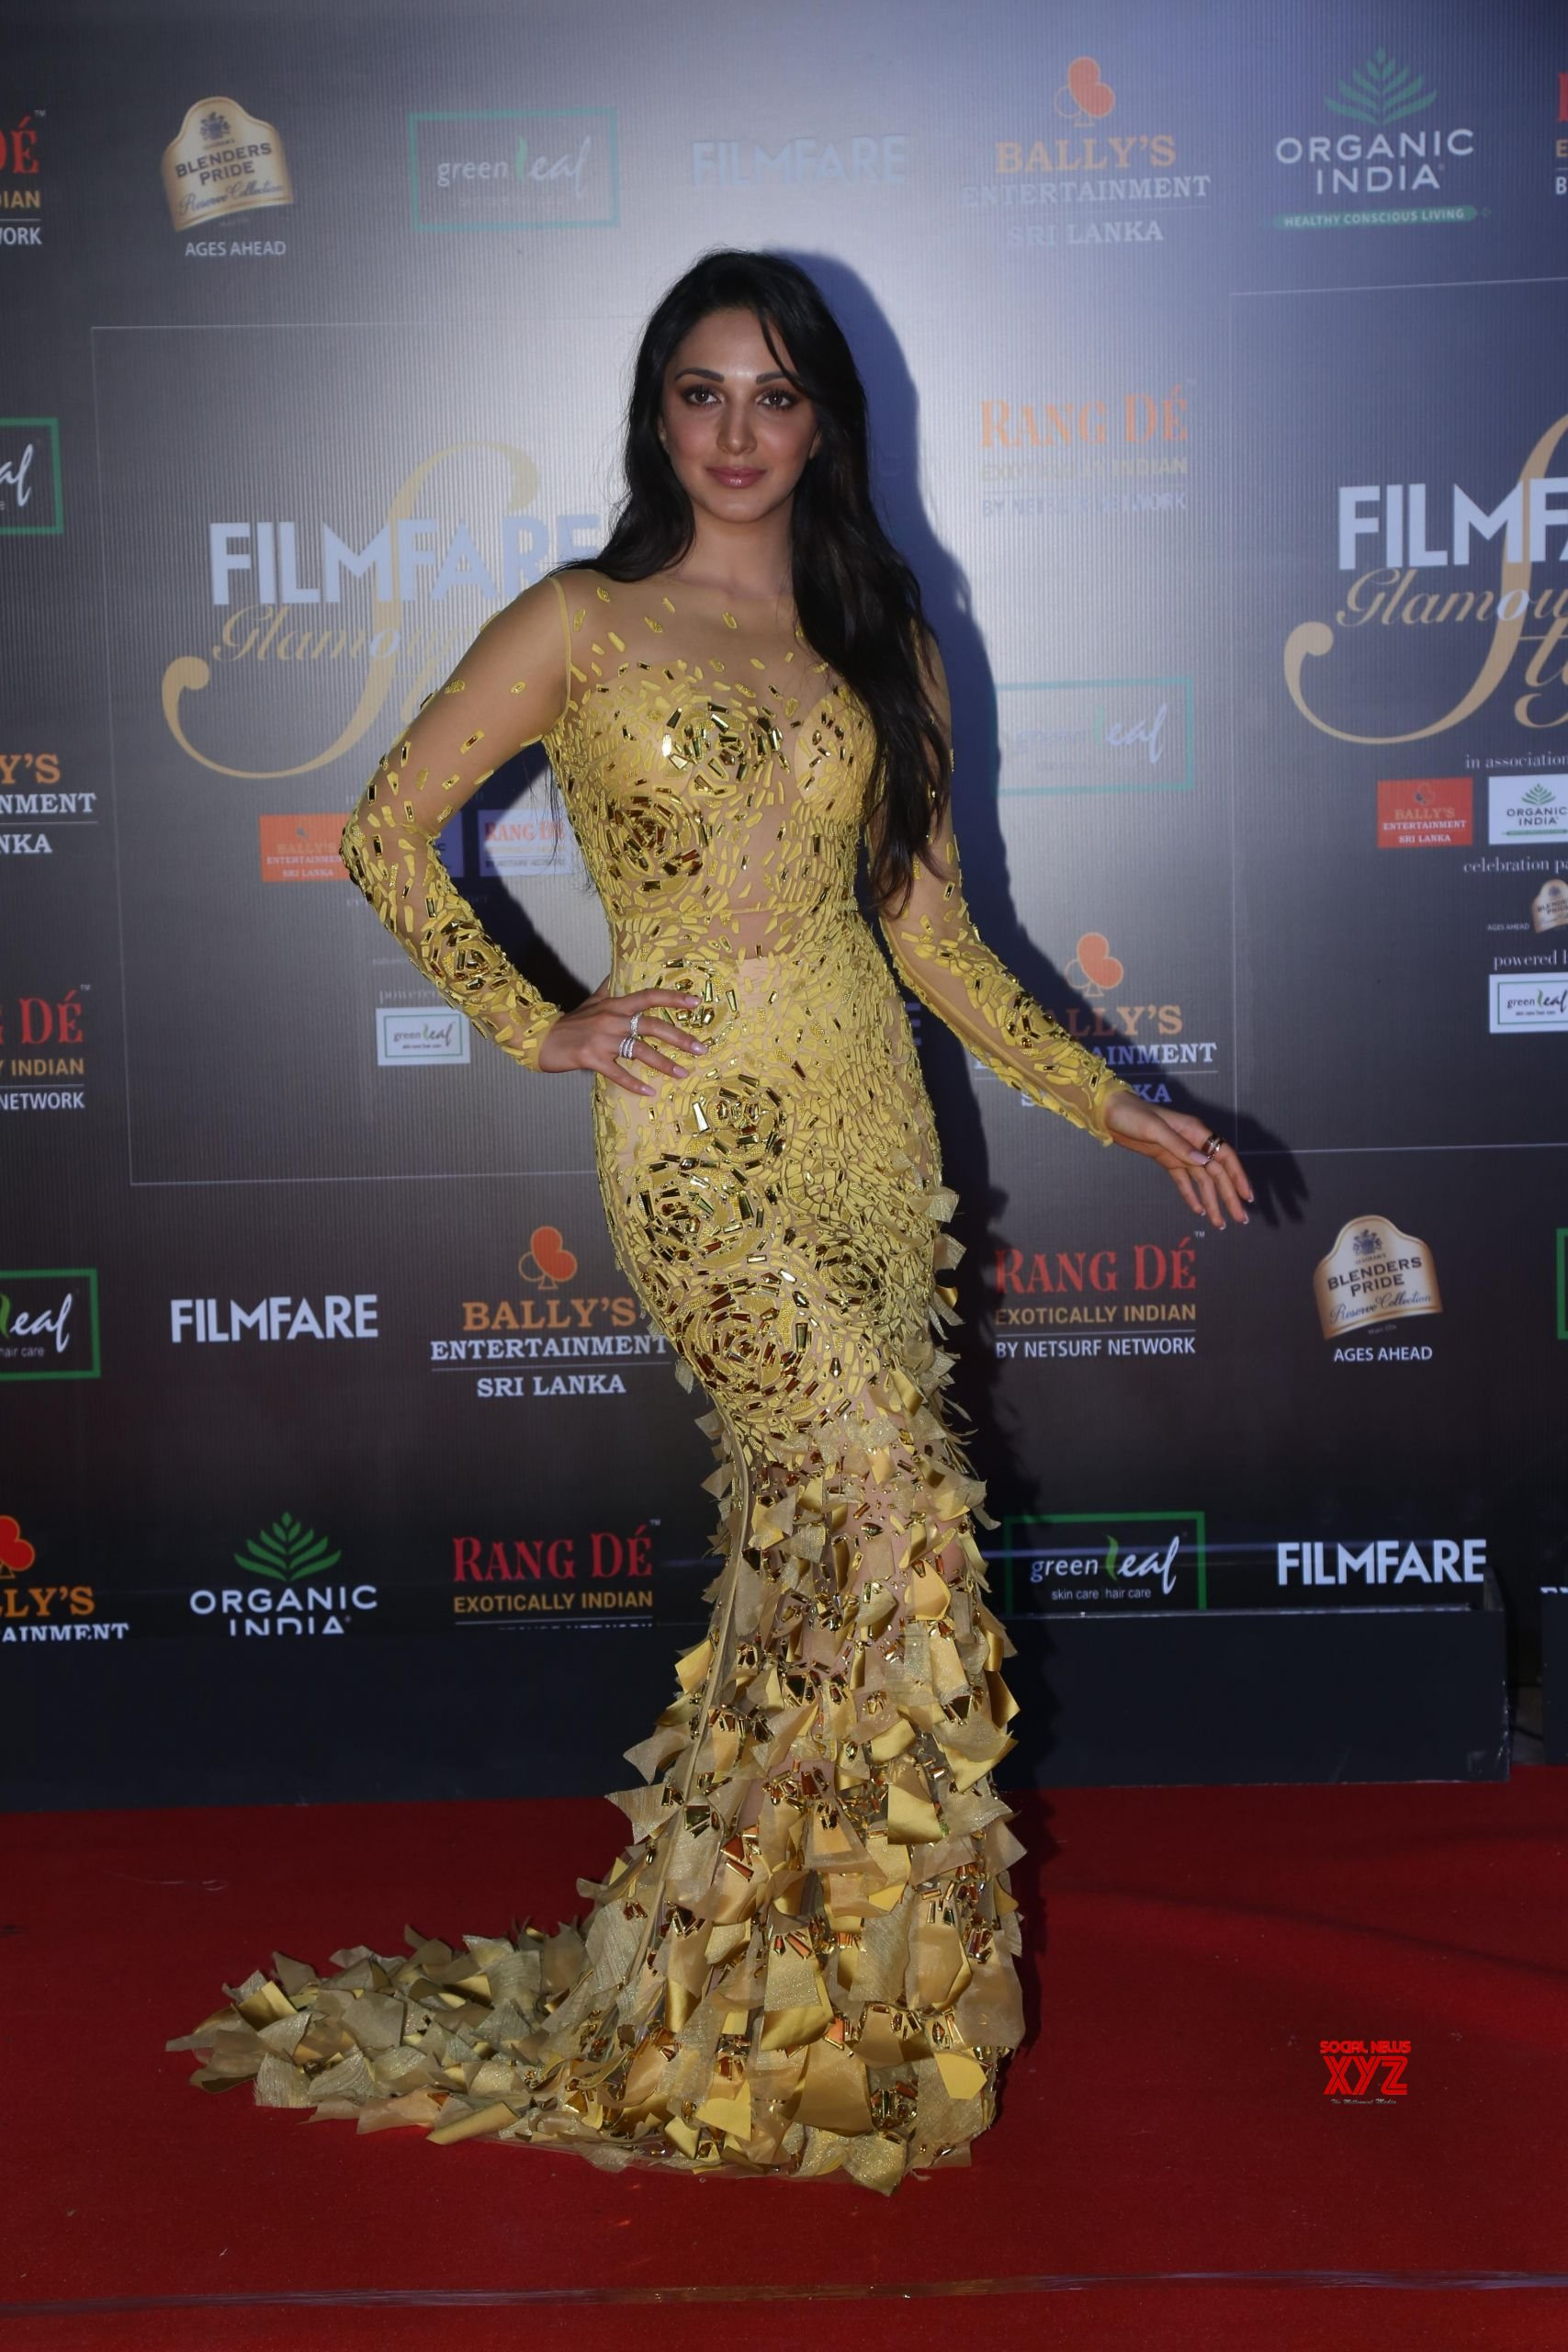 Actress Kiara Advani Hot HD Stills From Filmfare Glamour And Style Awards 2019 Red Carpet